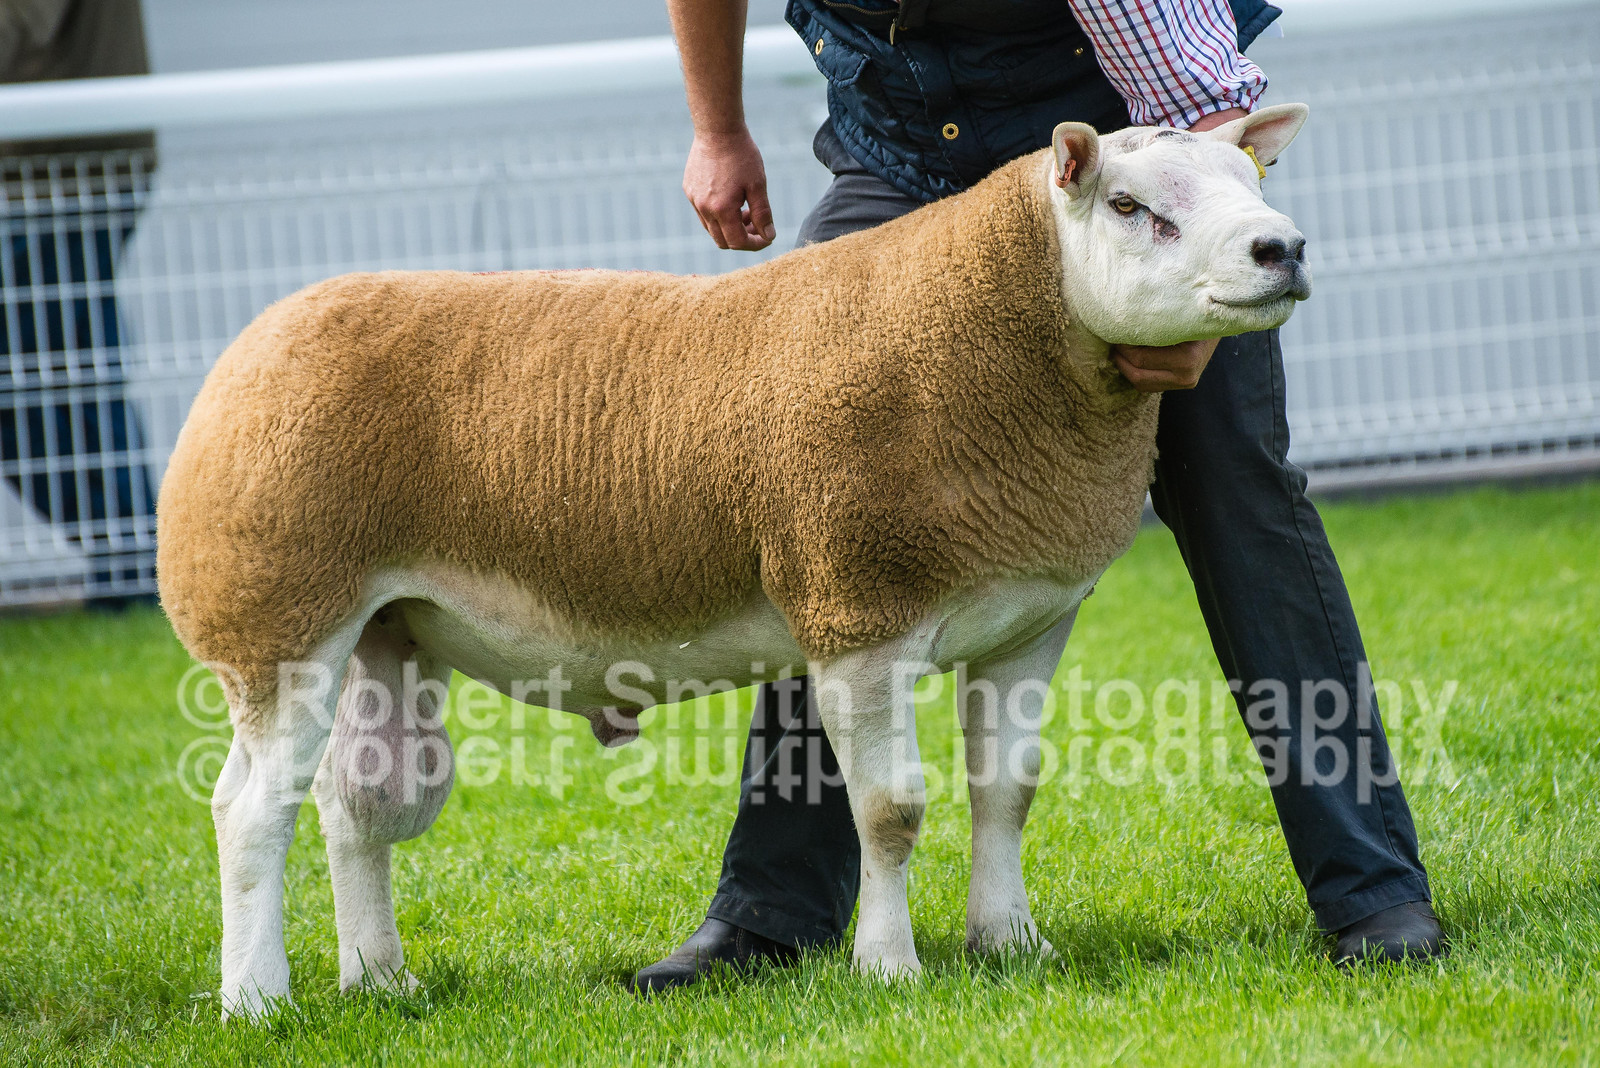 1 - lot 2887 Texel sold for 8600 gns